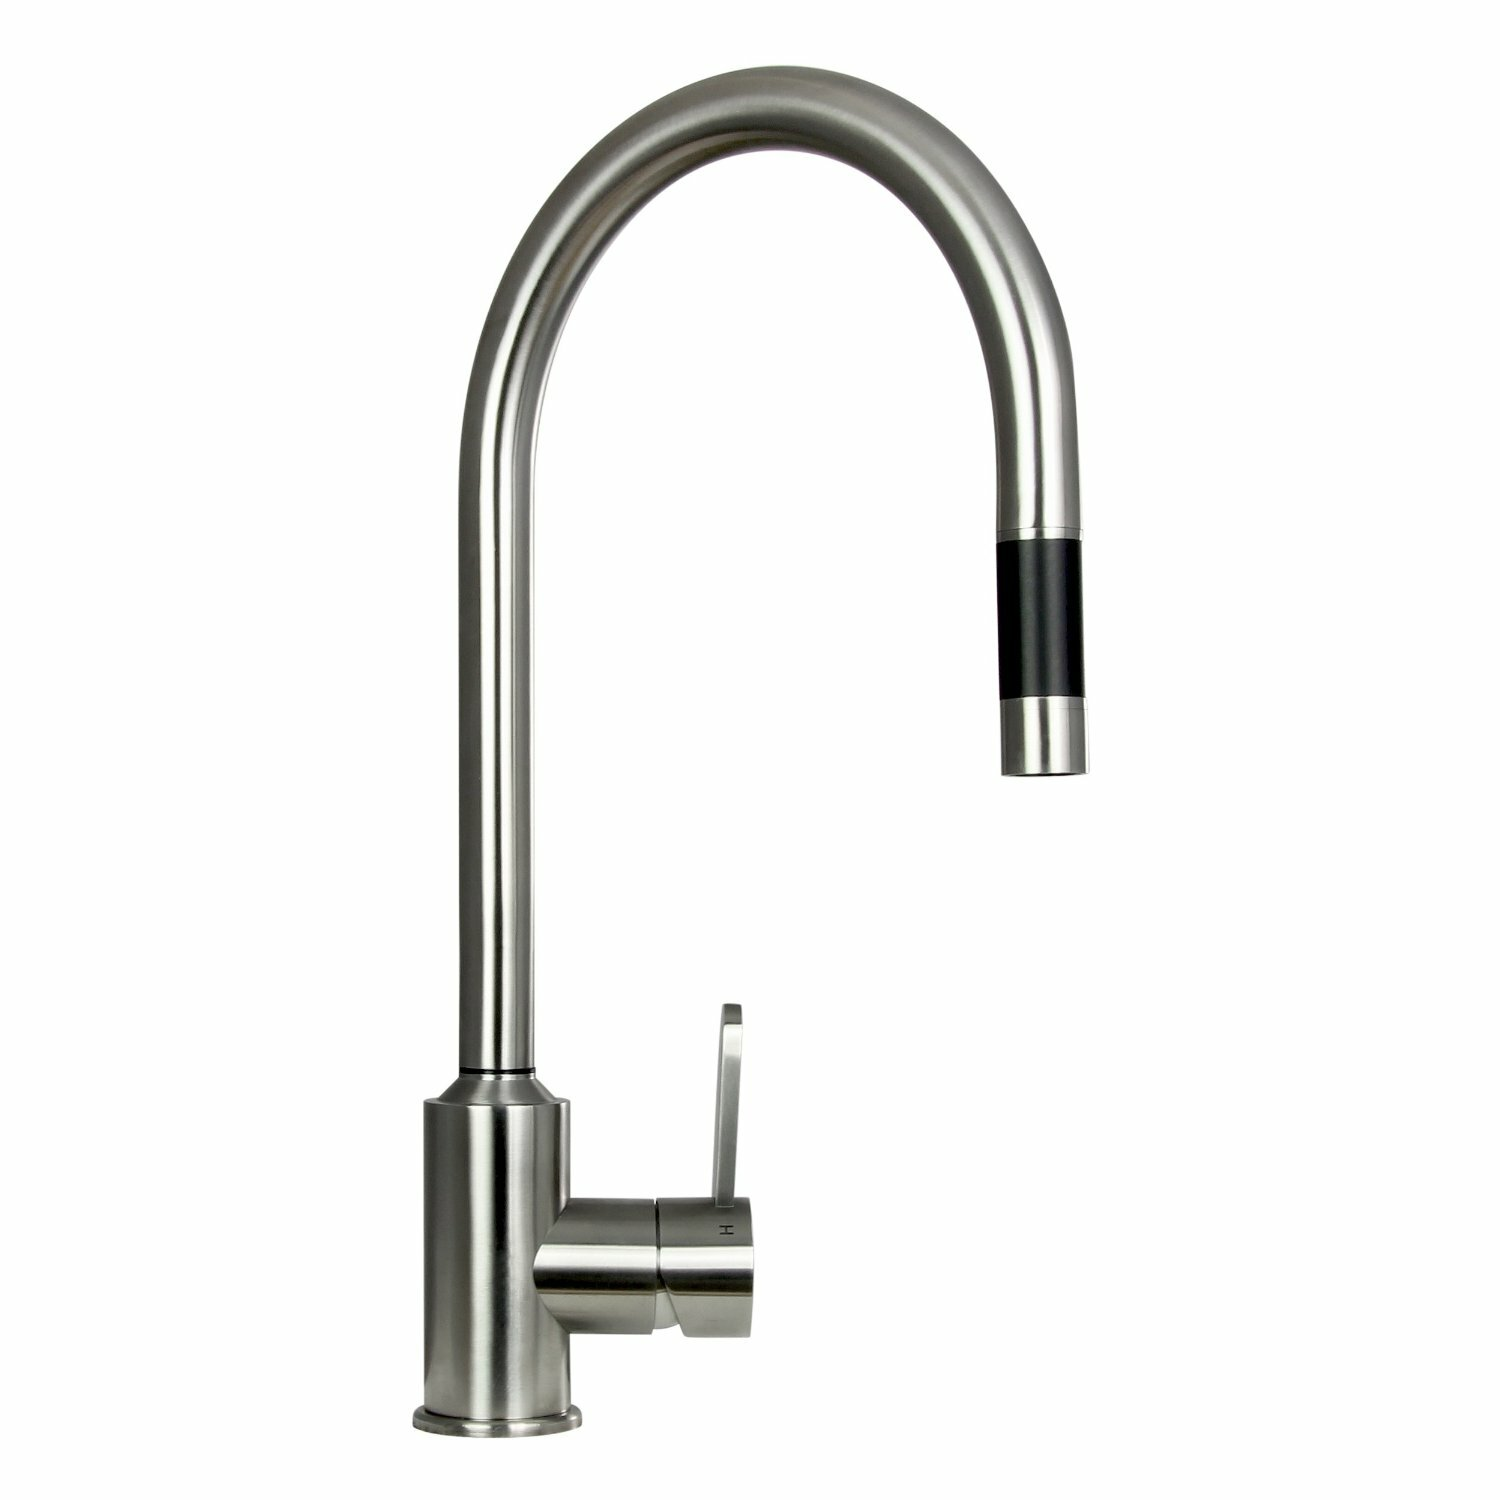 Kitchen Pull Out Faucet Boann Flor Single Handle Pull Out Kitchen Faucet Reviews Wayfair